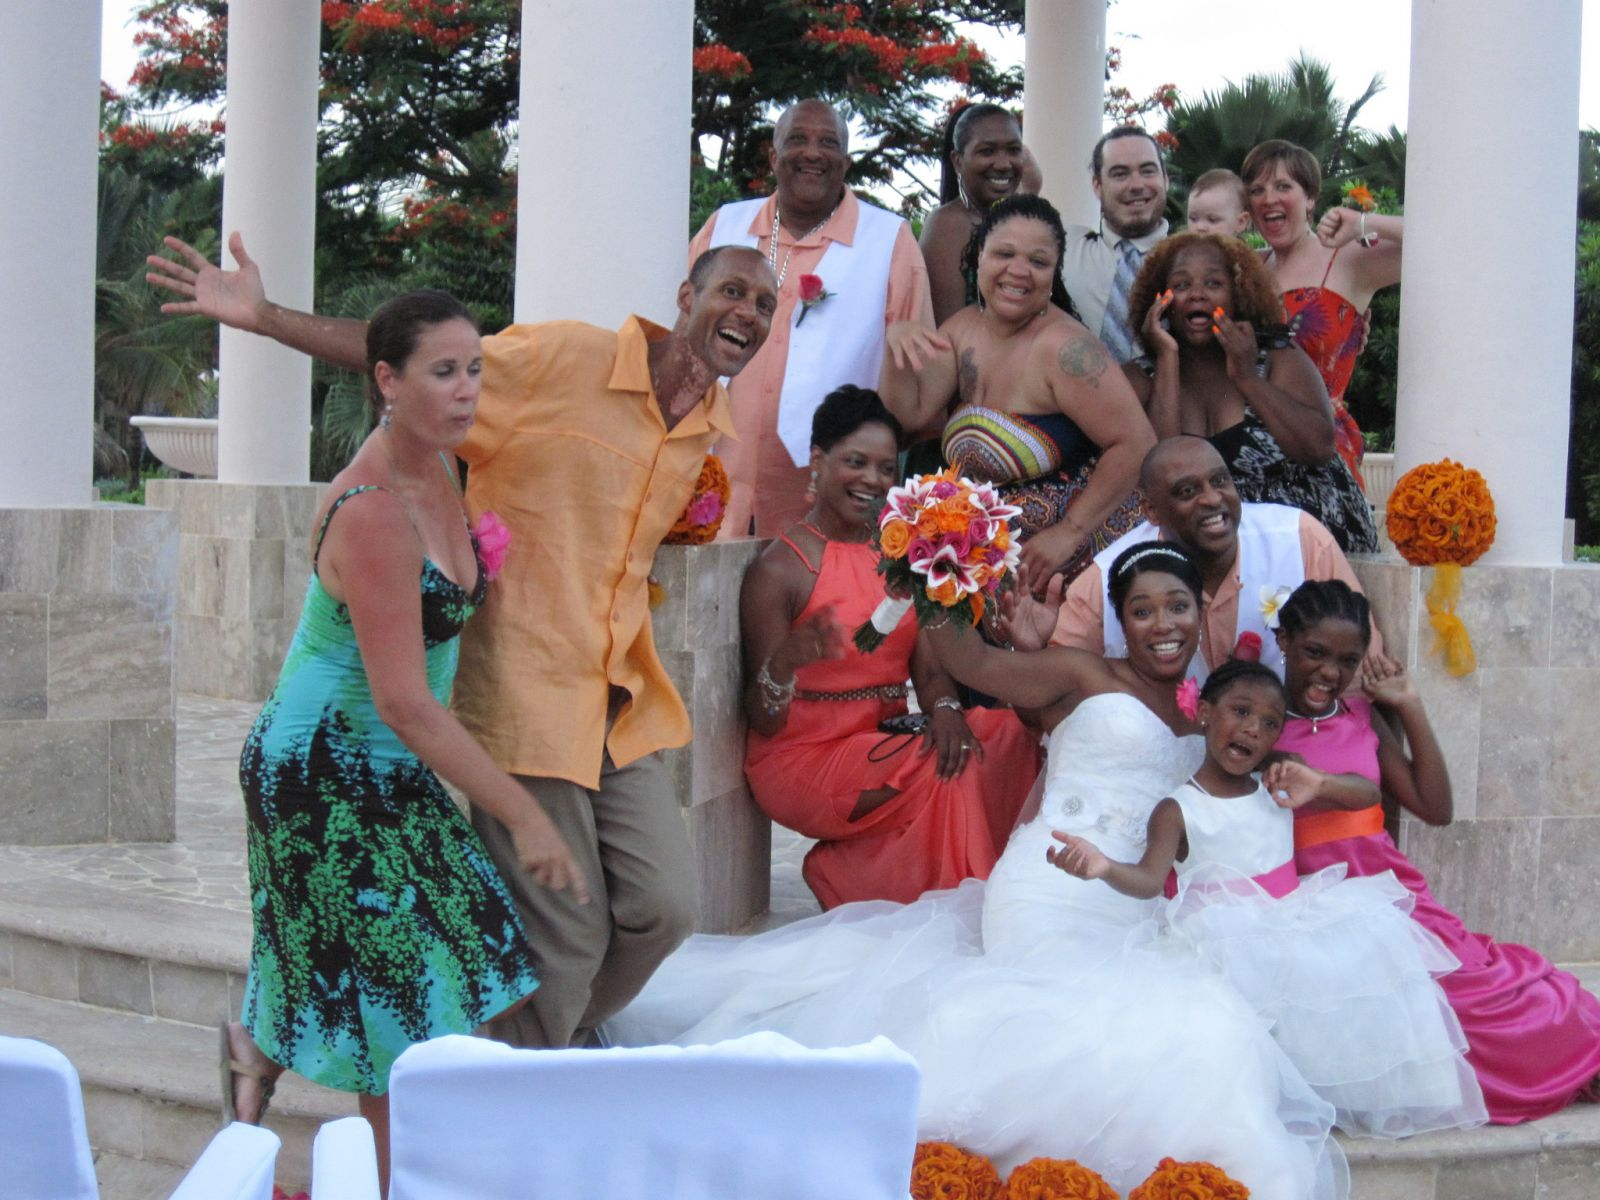 Dreams Punta Cana Brides